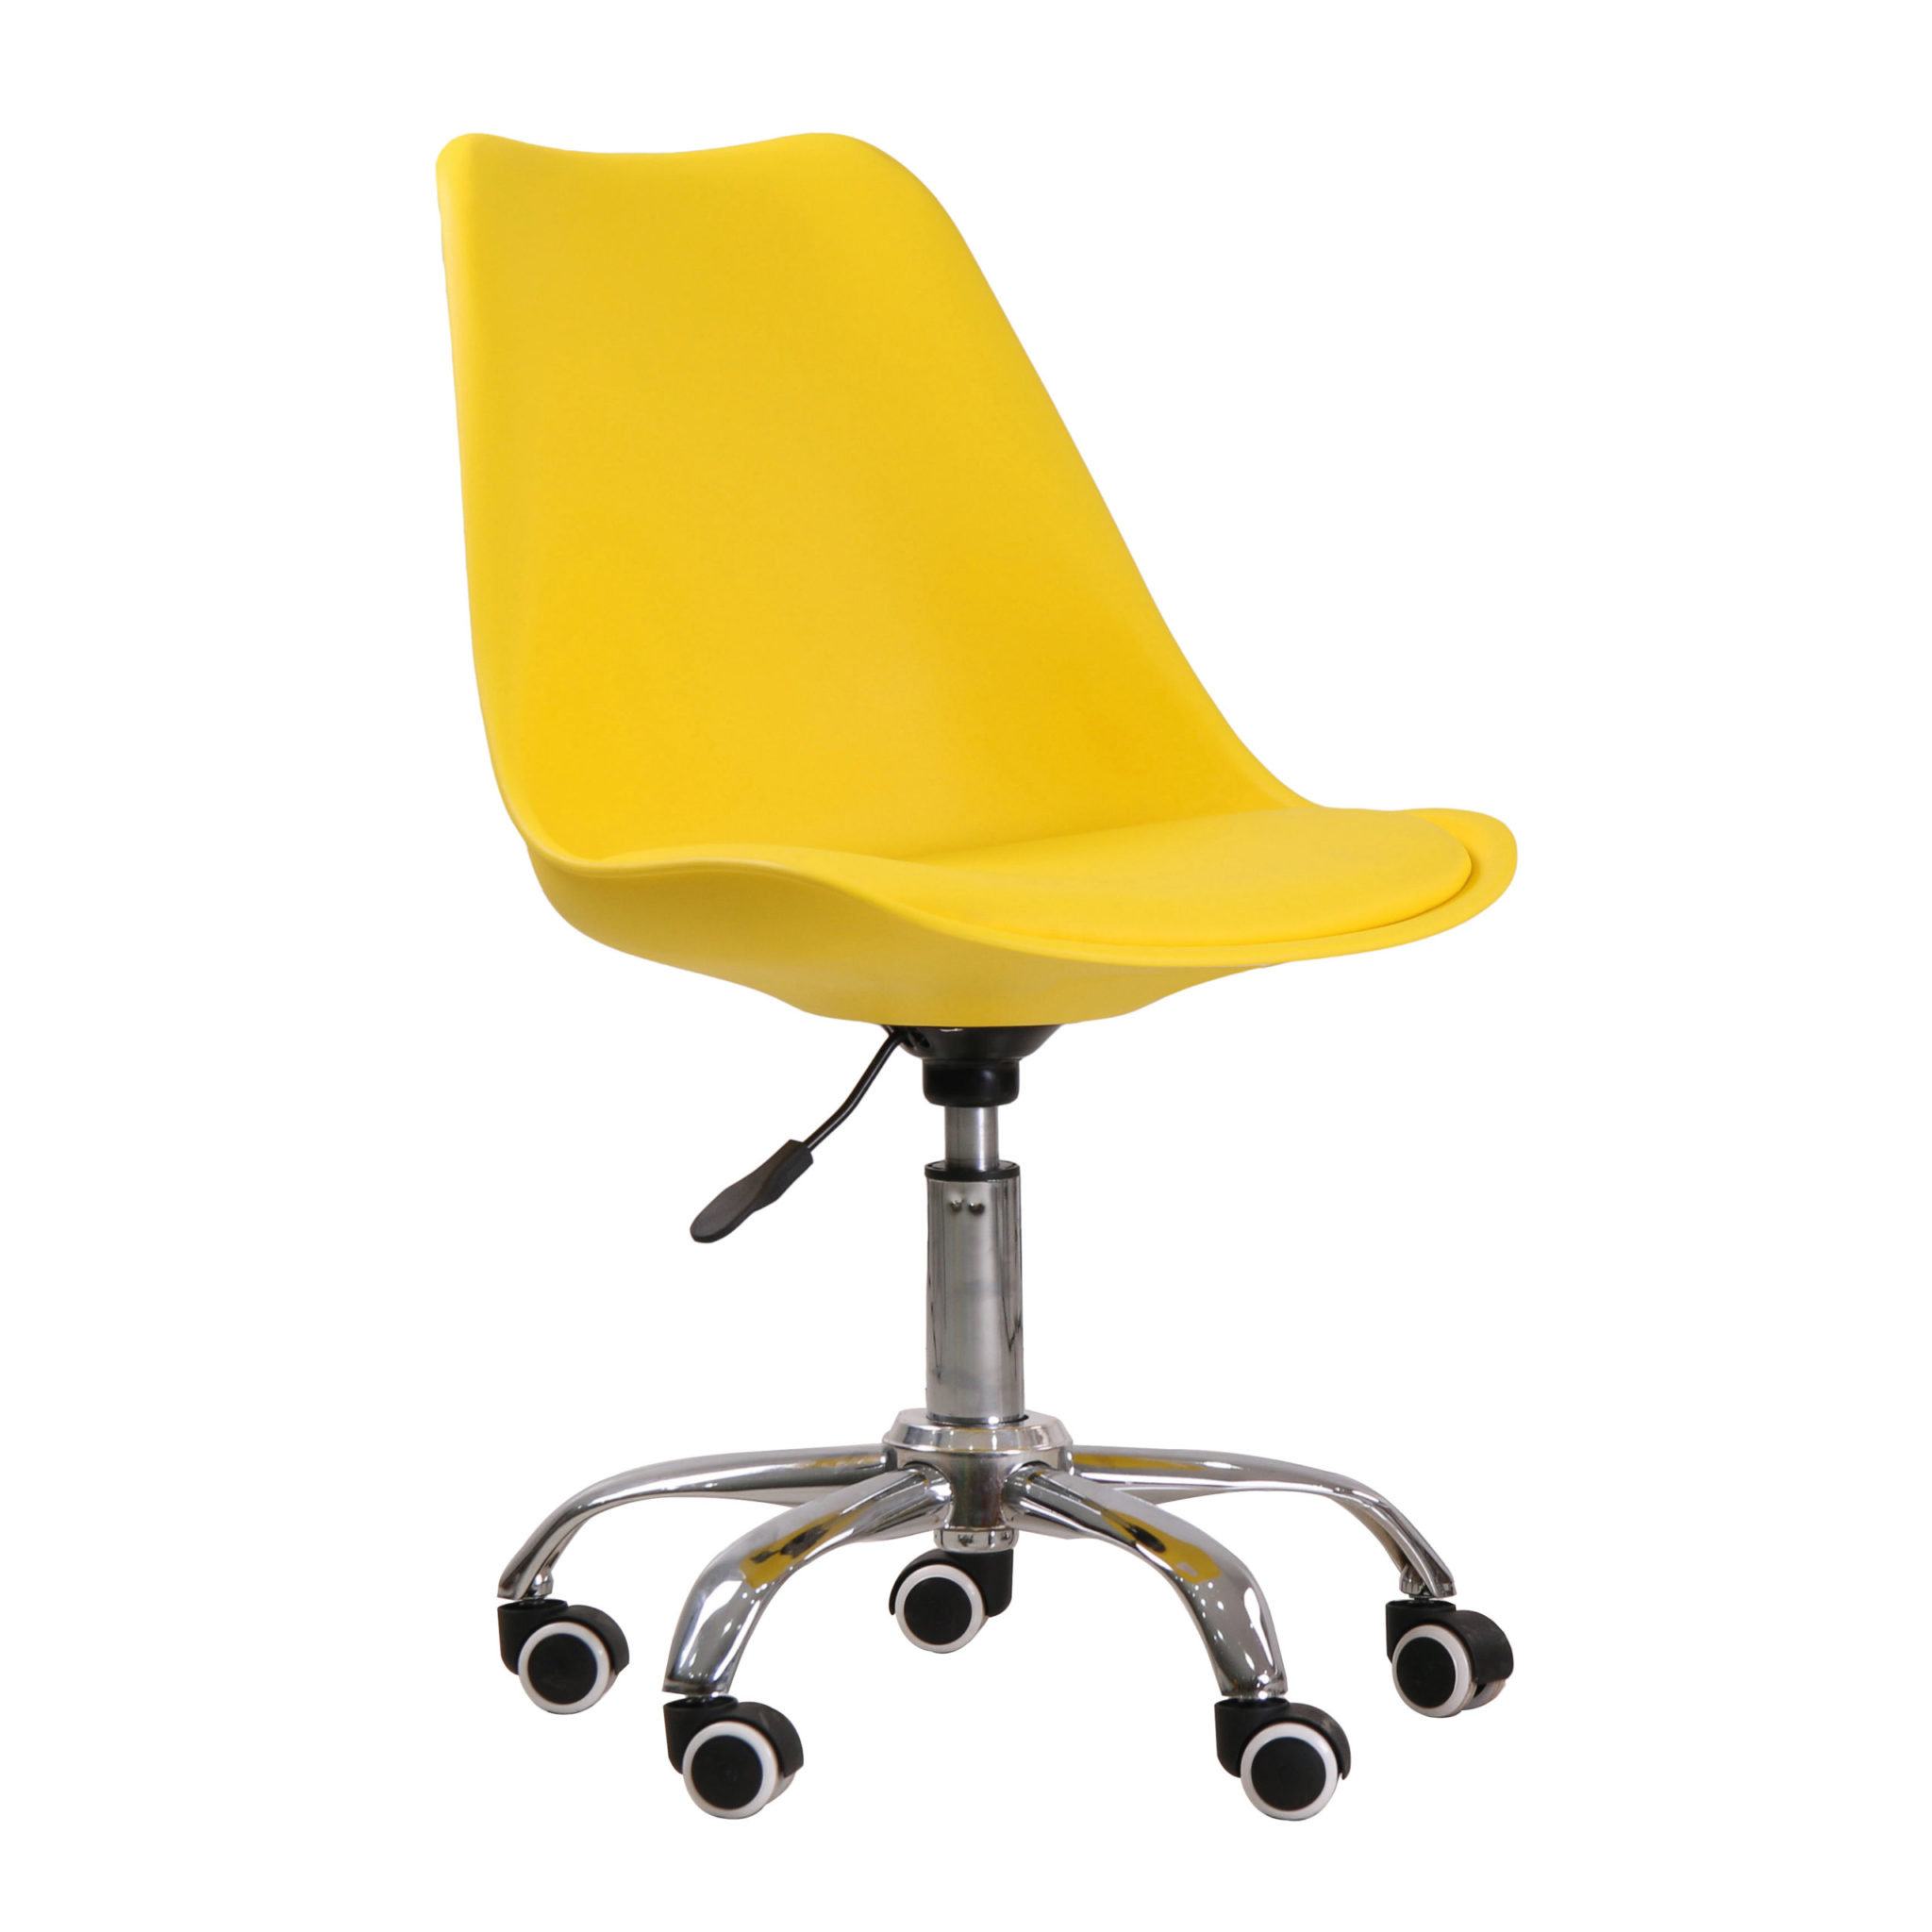 Osdera Swivel Office Chair Yellow